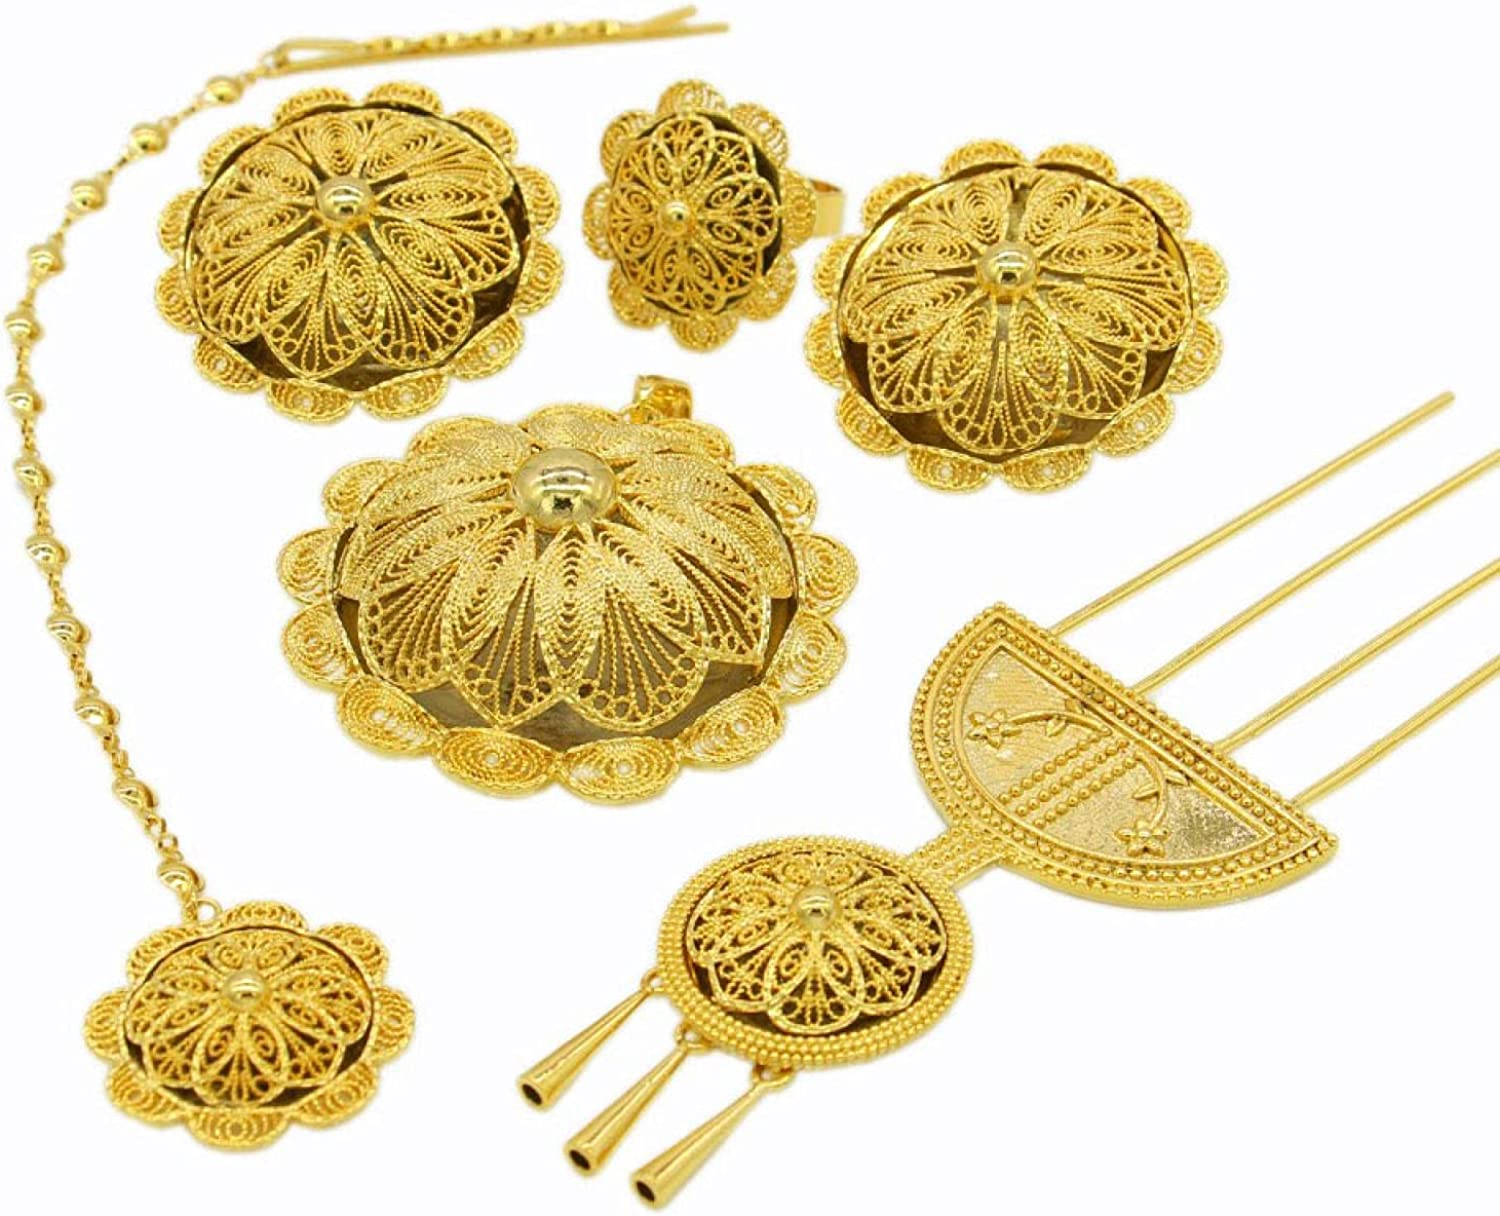 Earring/Necklace/Pendant/Ring/Hairpin/Hairchain Jewelry Set For Women Gold Color/Copper Ethiopian Wedding Gifts